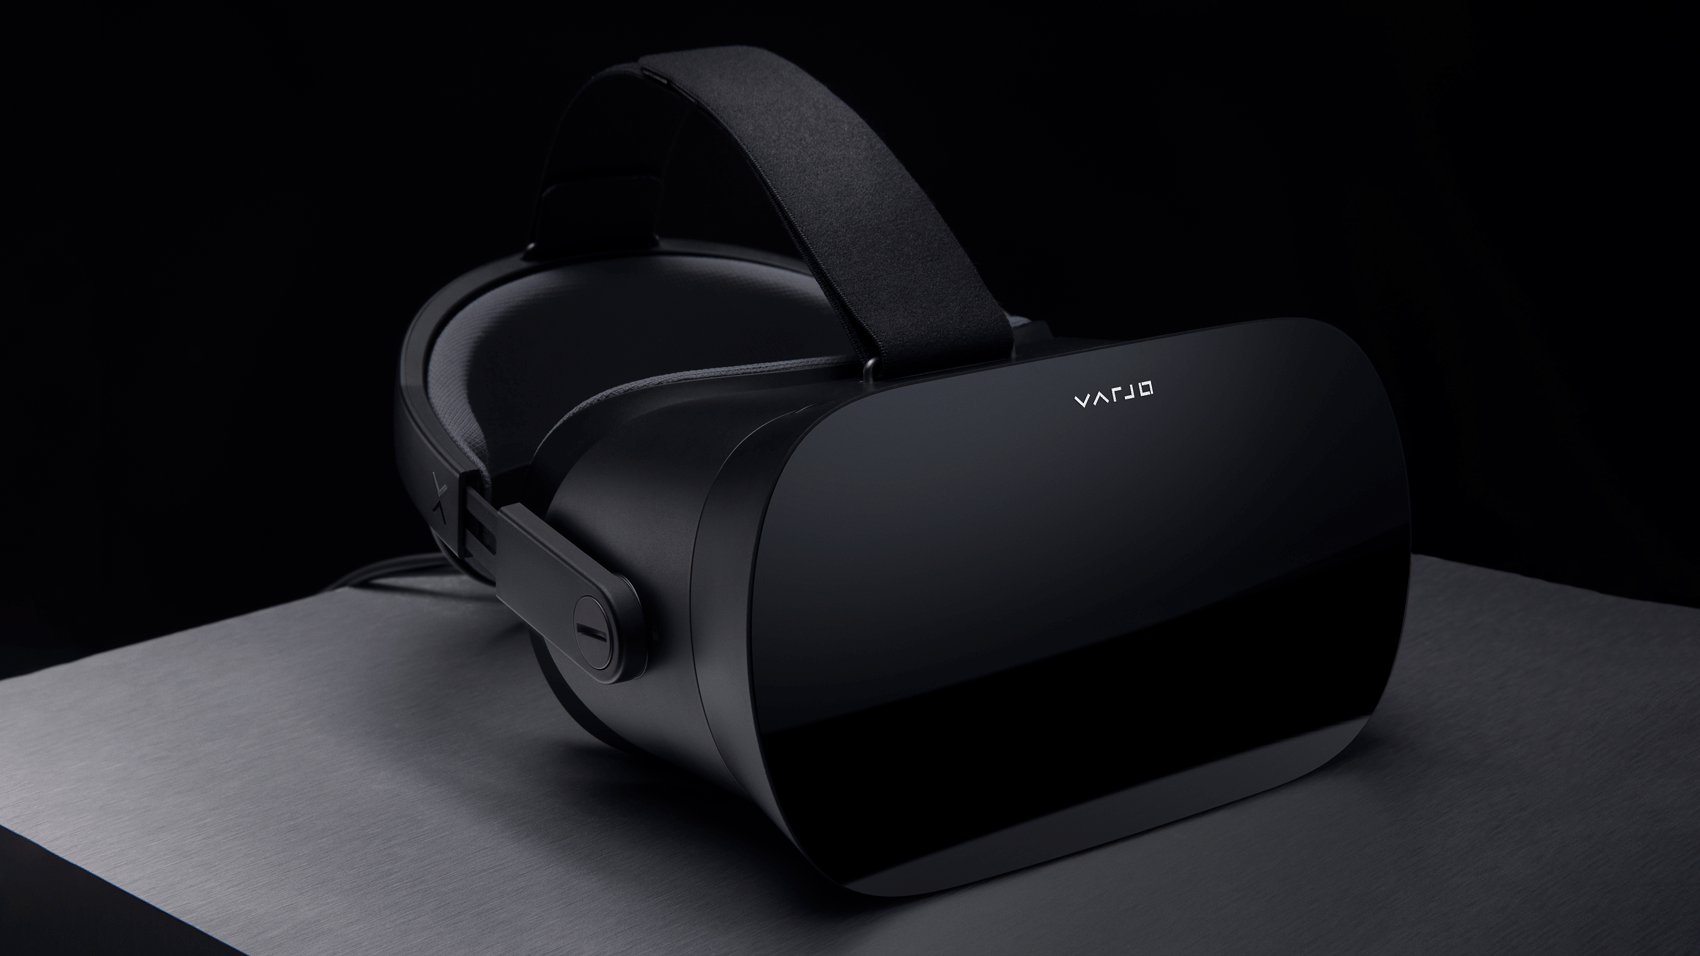 Varjo Launches VR-2 with SteamVR Support and Hand-tracking